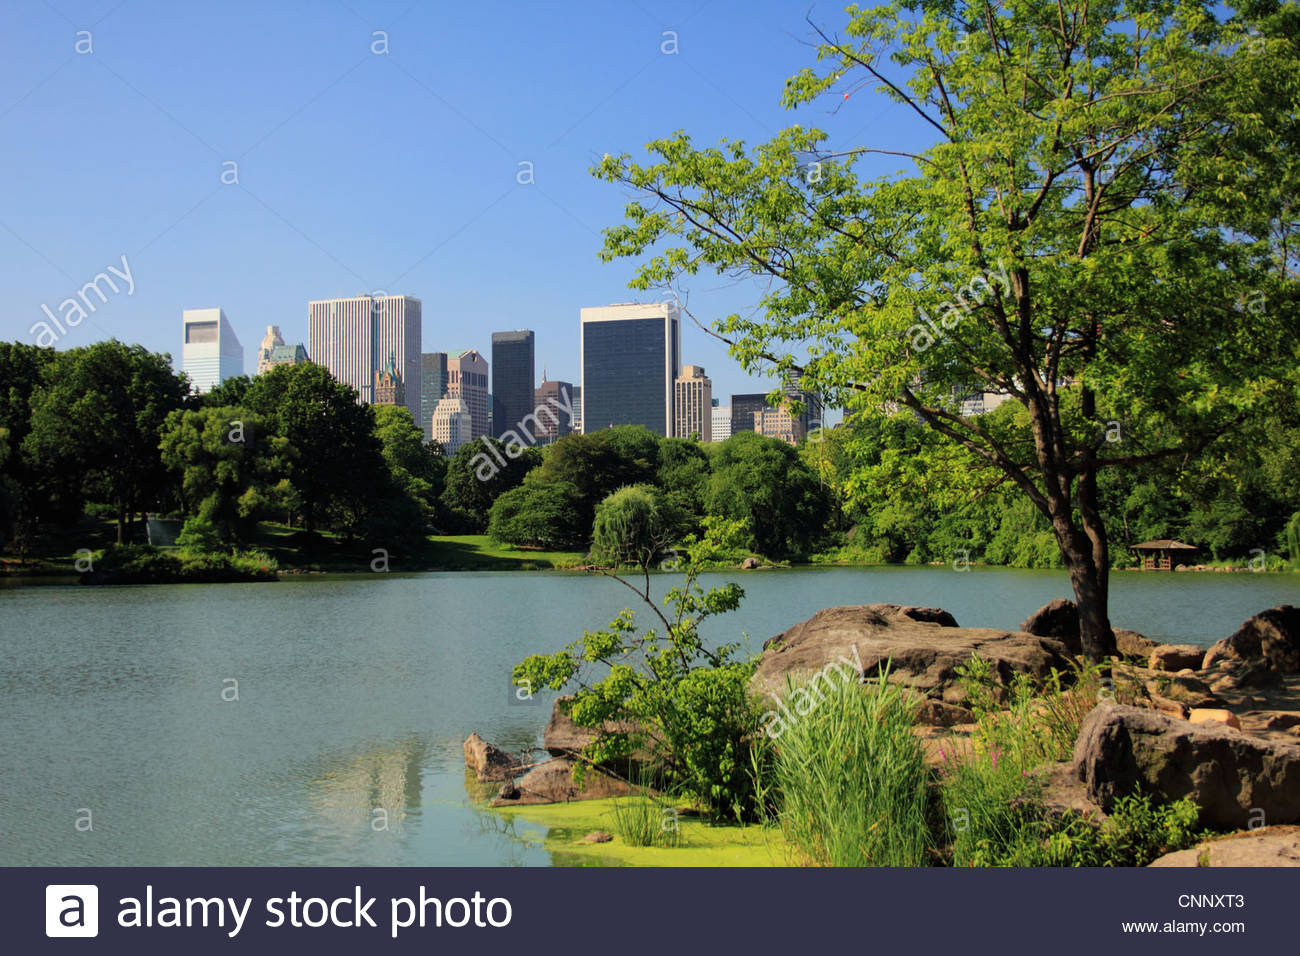 Still lake in Central Park - Stock Image